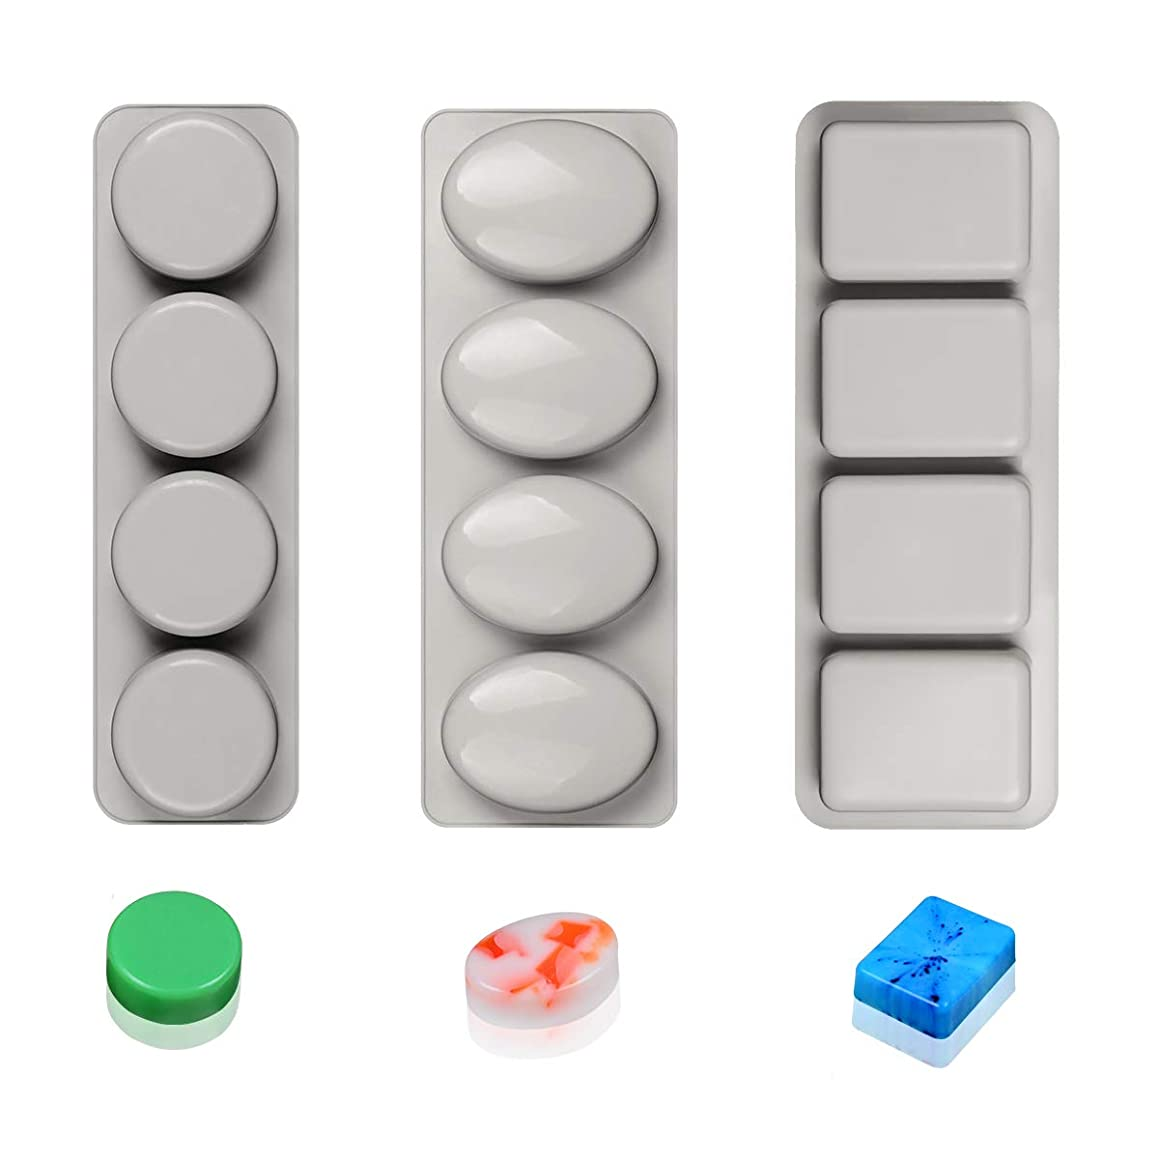 Silicone Soap Molds Round Oval & Rectangle Silicone Mold-3pcs Soap Molds for Soap Making and Candle